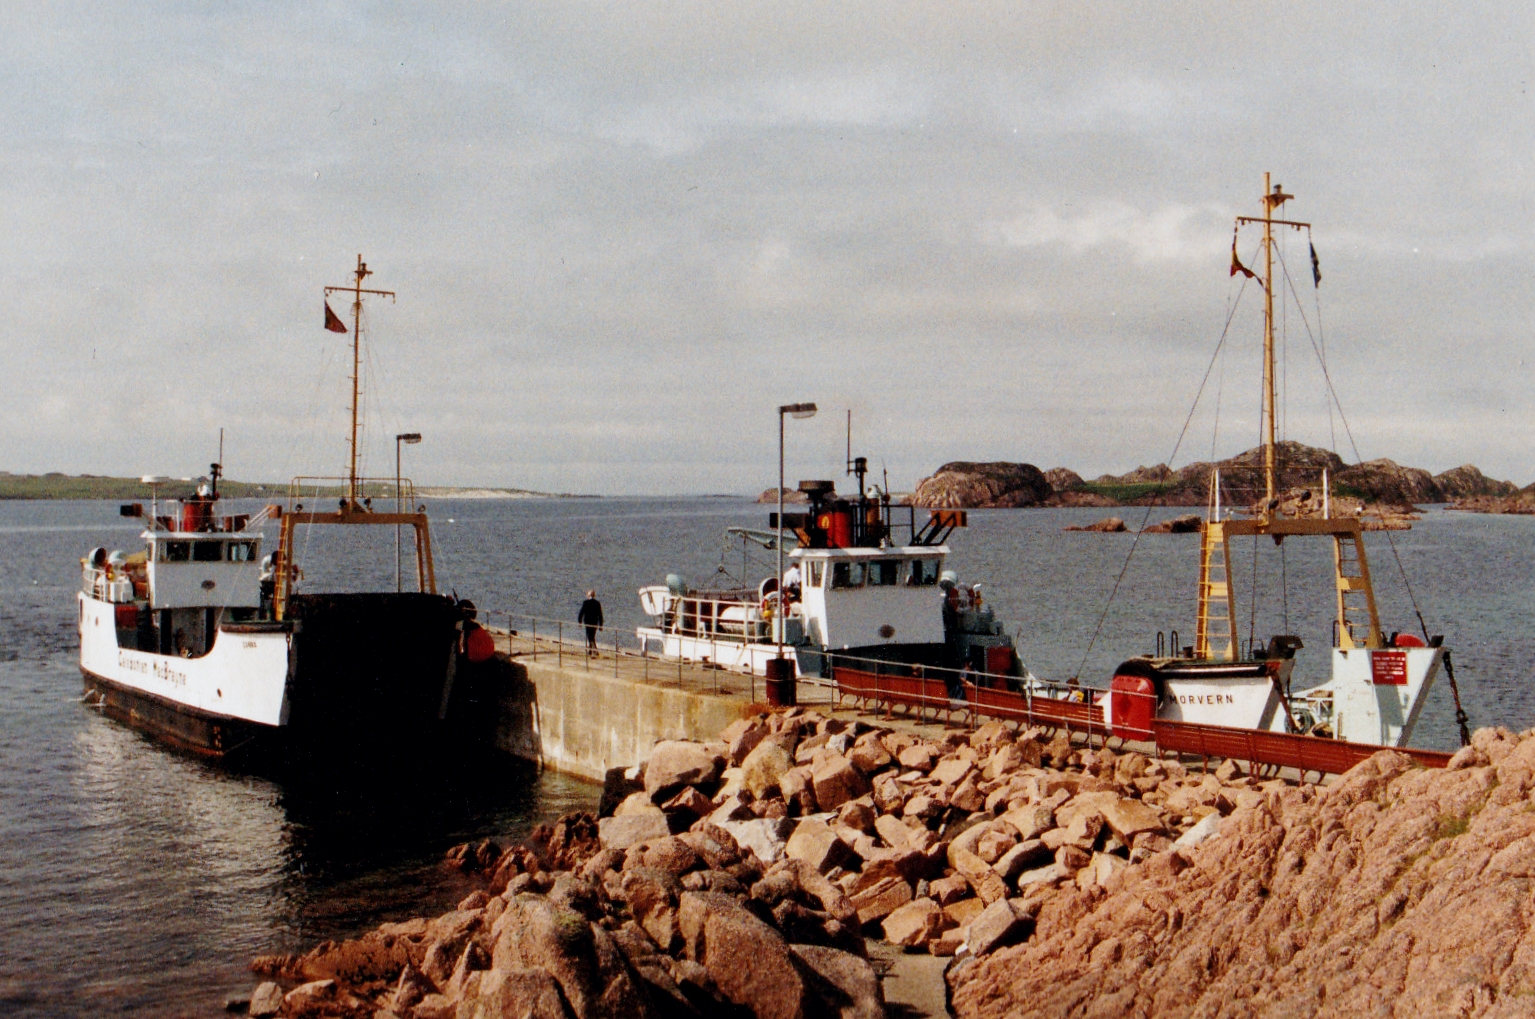 Canna and Morvern at Fionnphort (Jim Aikman Smith)